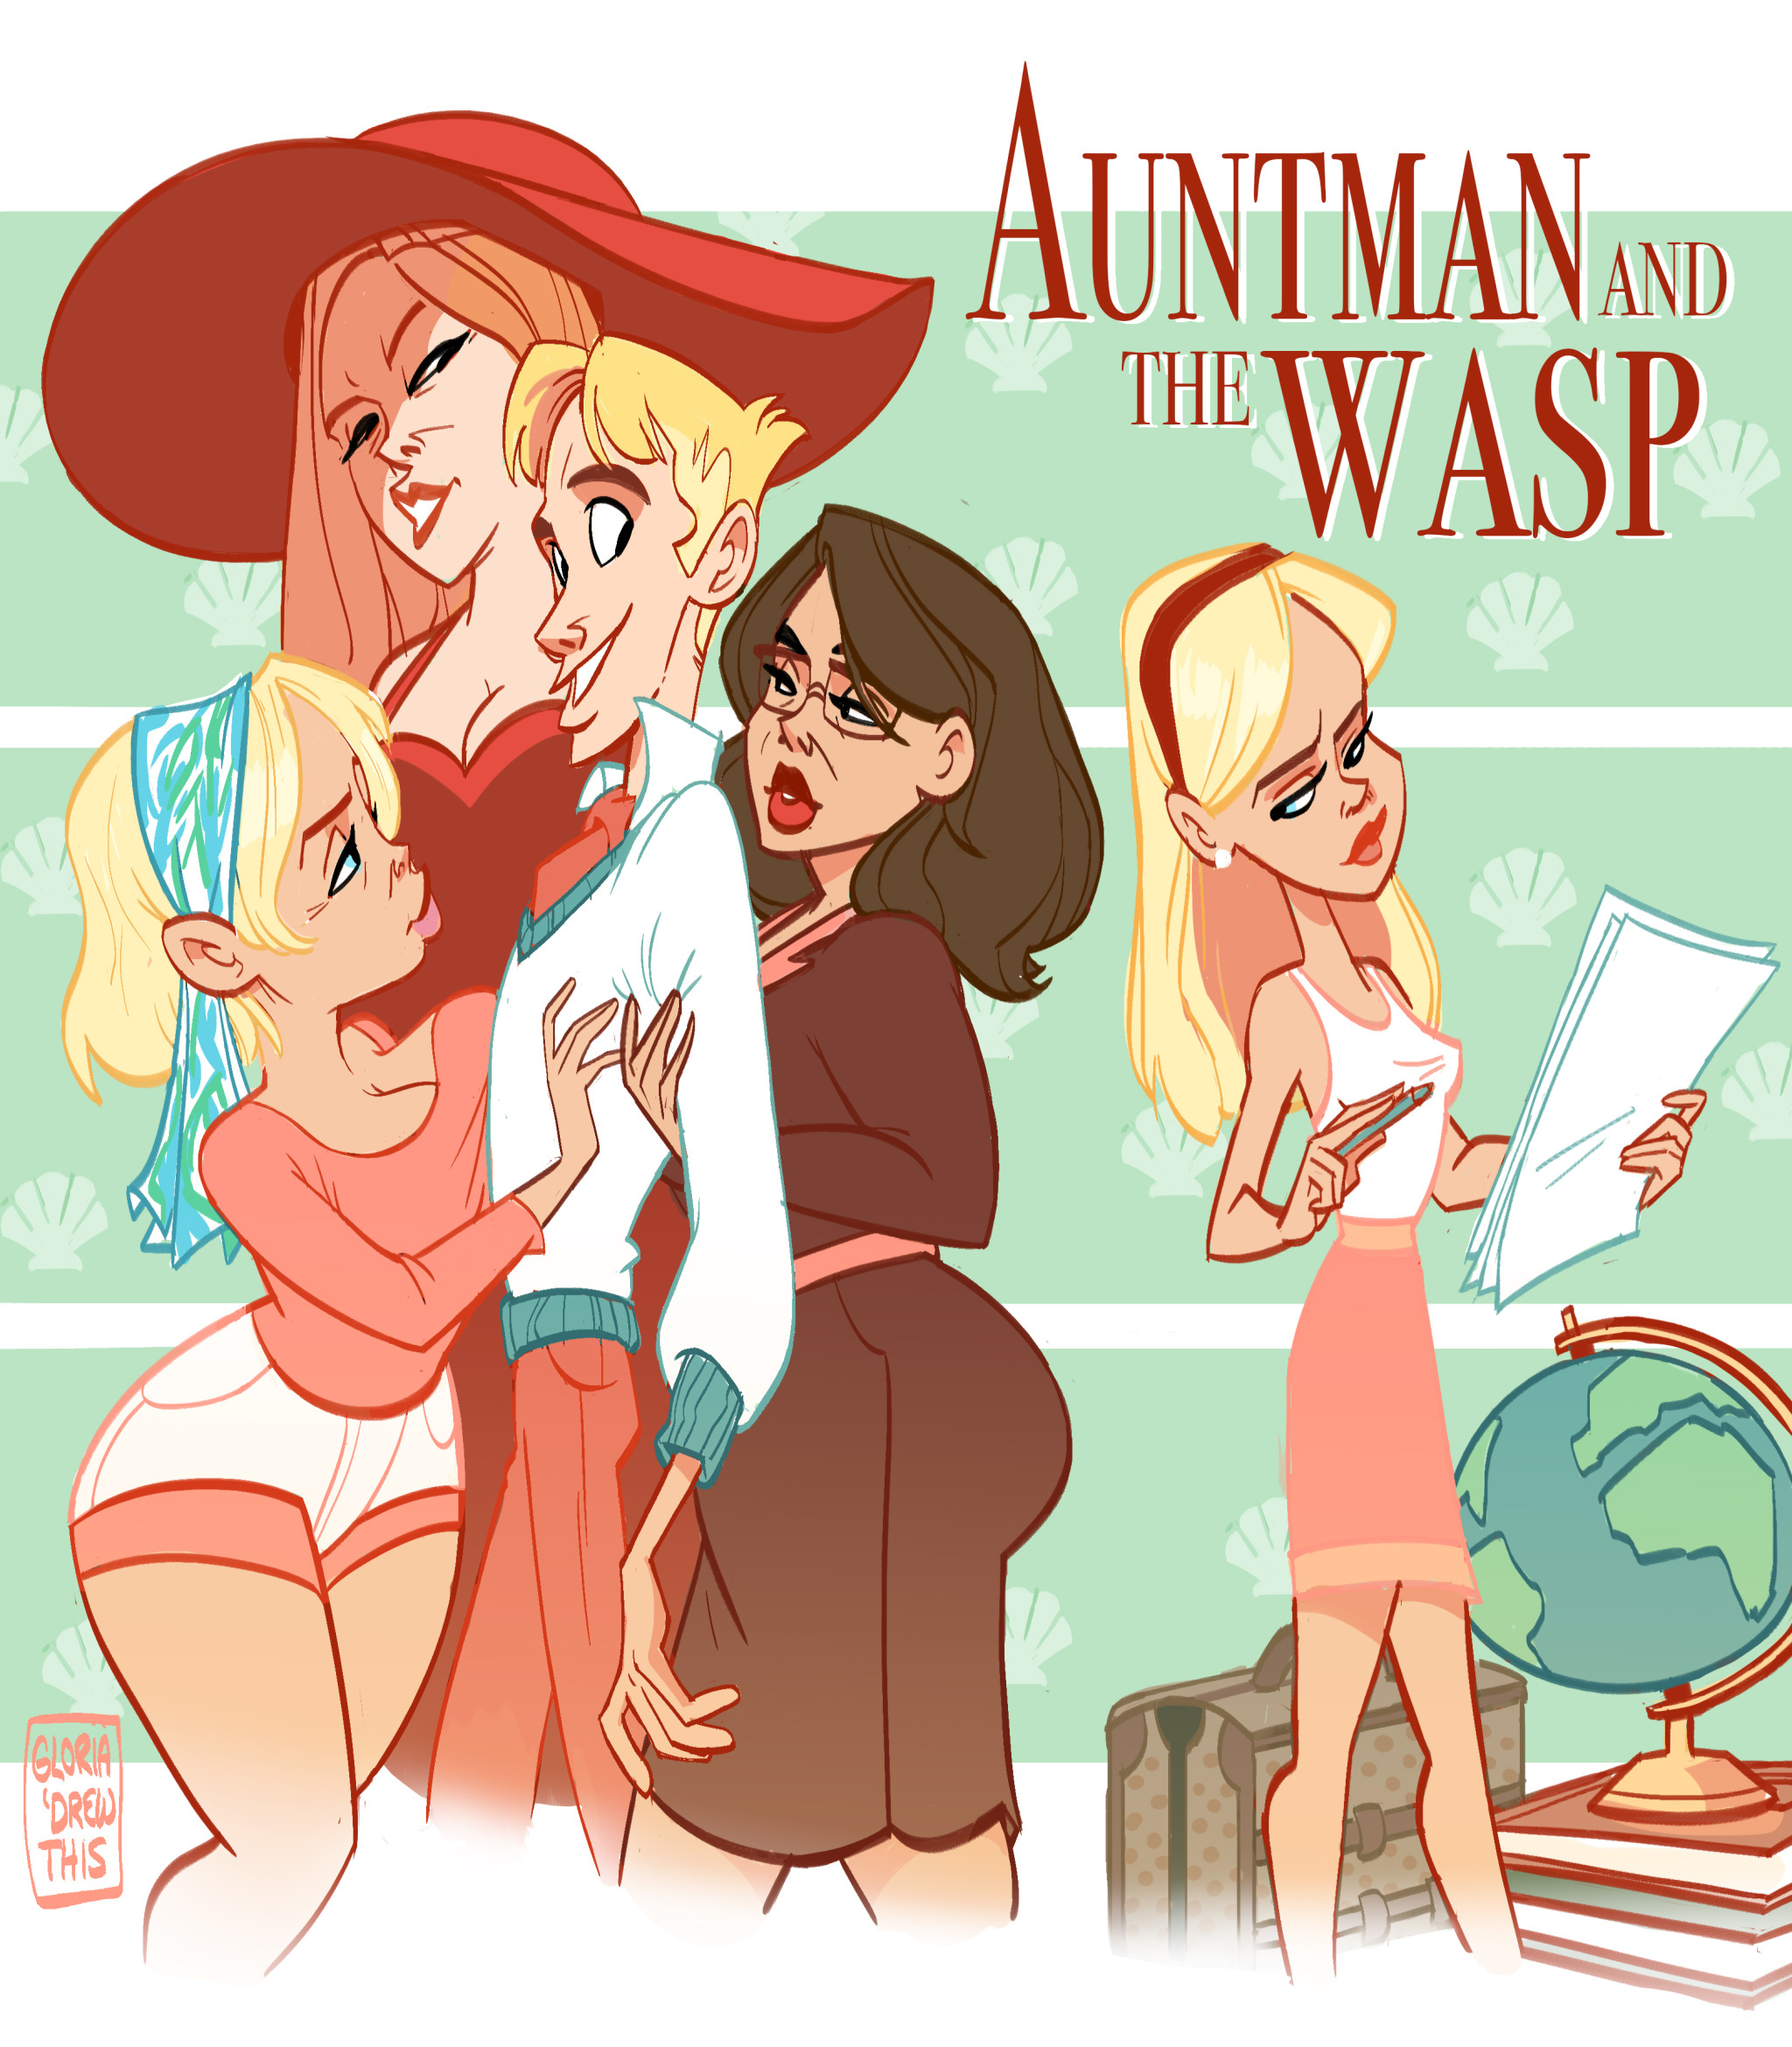 Auntman and The Wasp